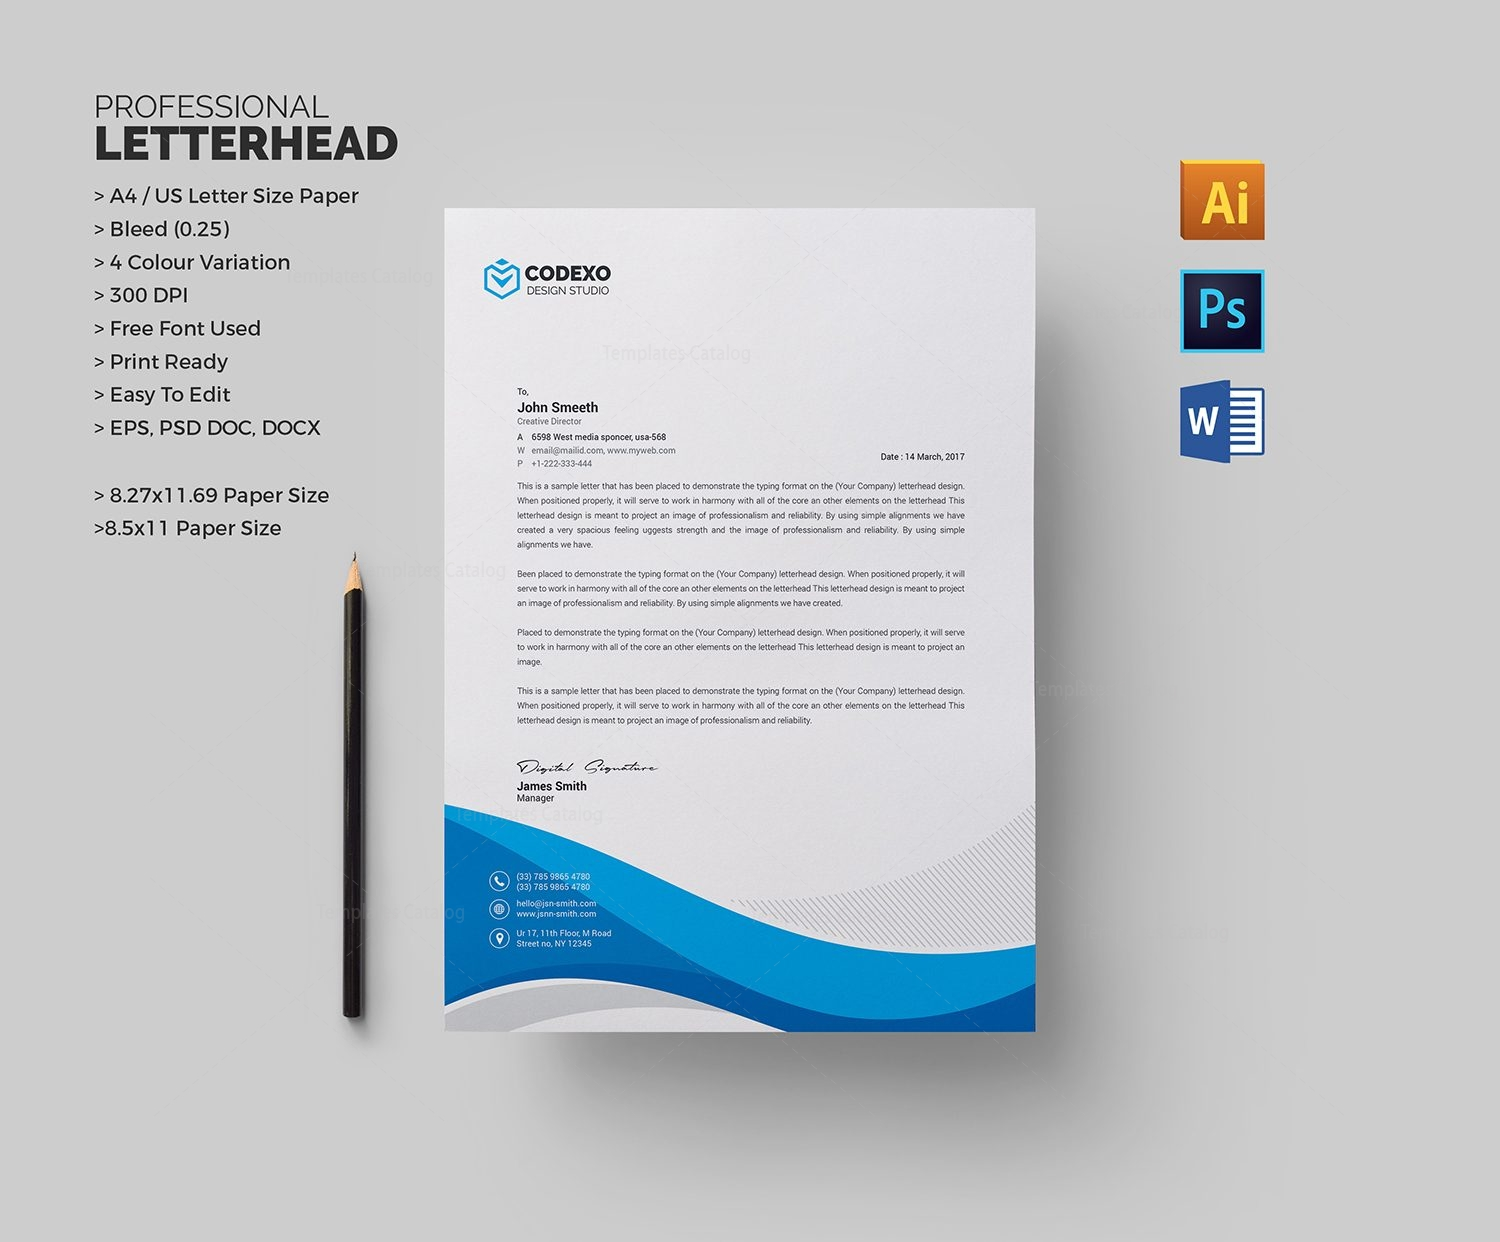 Professional letterhead sample 1g free letterhead templates 400 sample letterheads examples thecheapjerseys Image collections